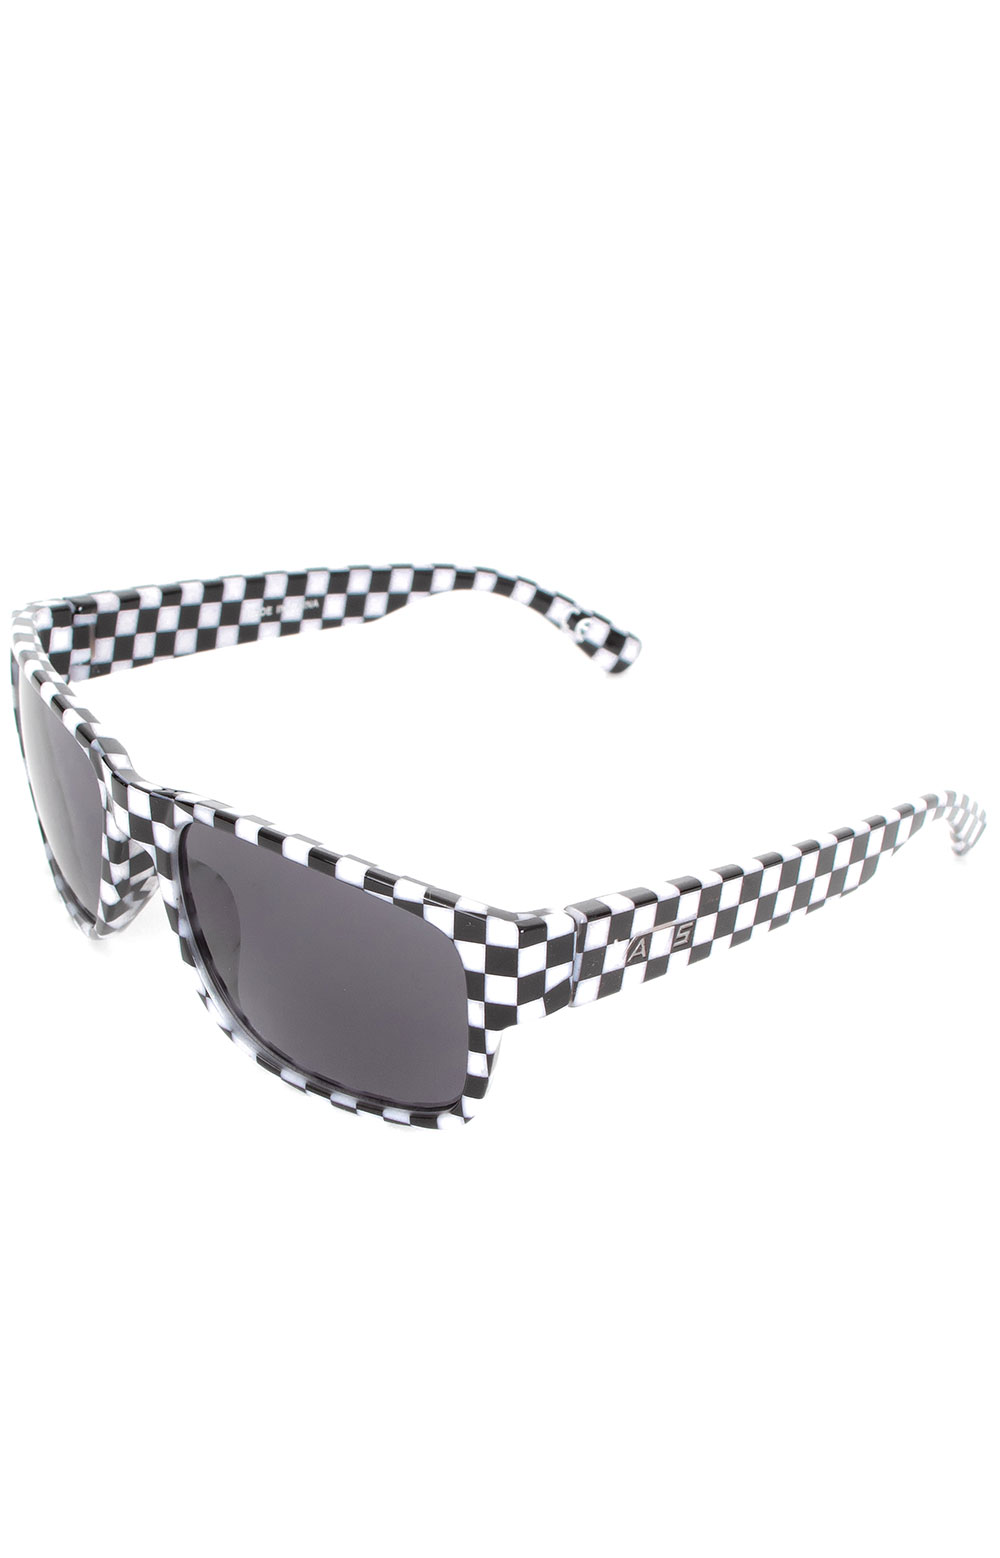 Darr Wrap Shades - Black/White